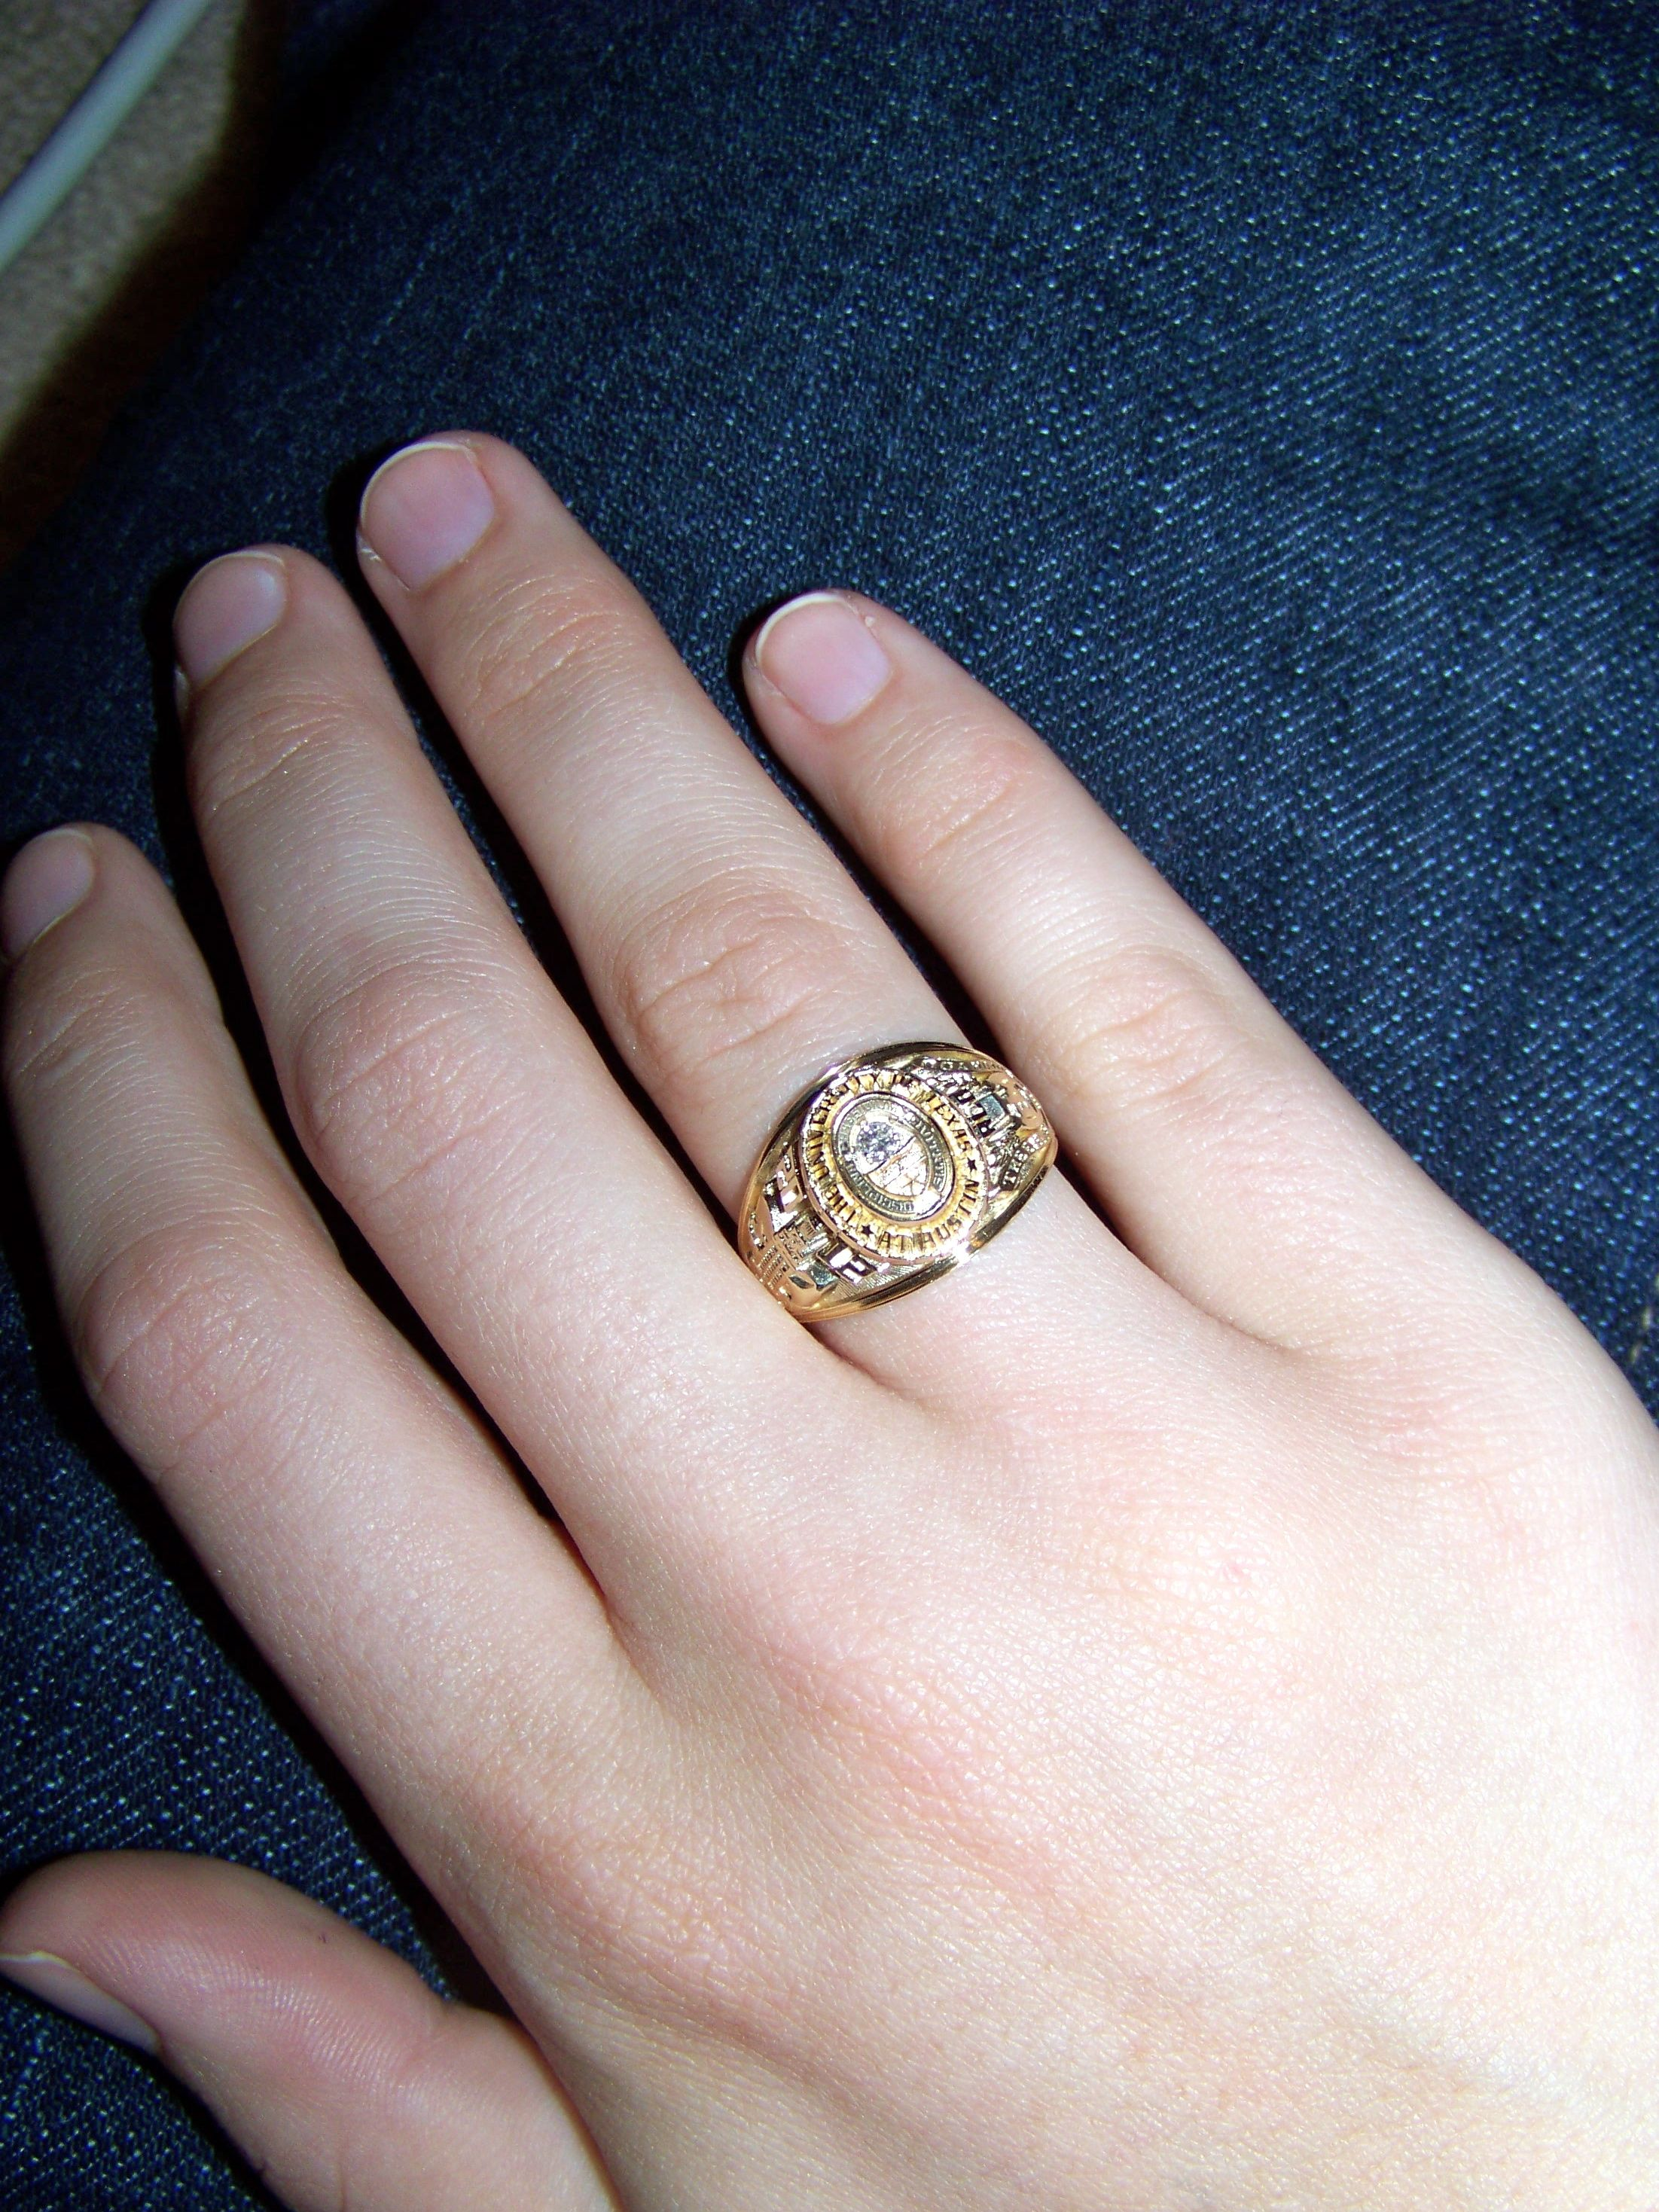 The University of Texas at Austin class ring bought mine